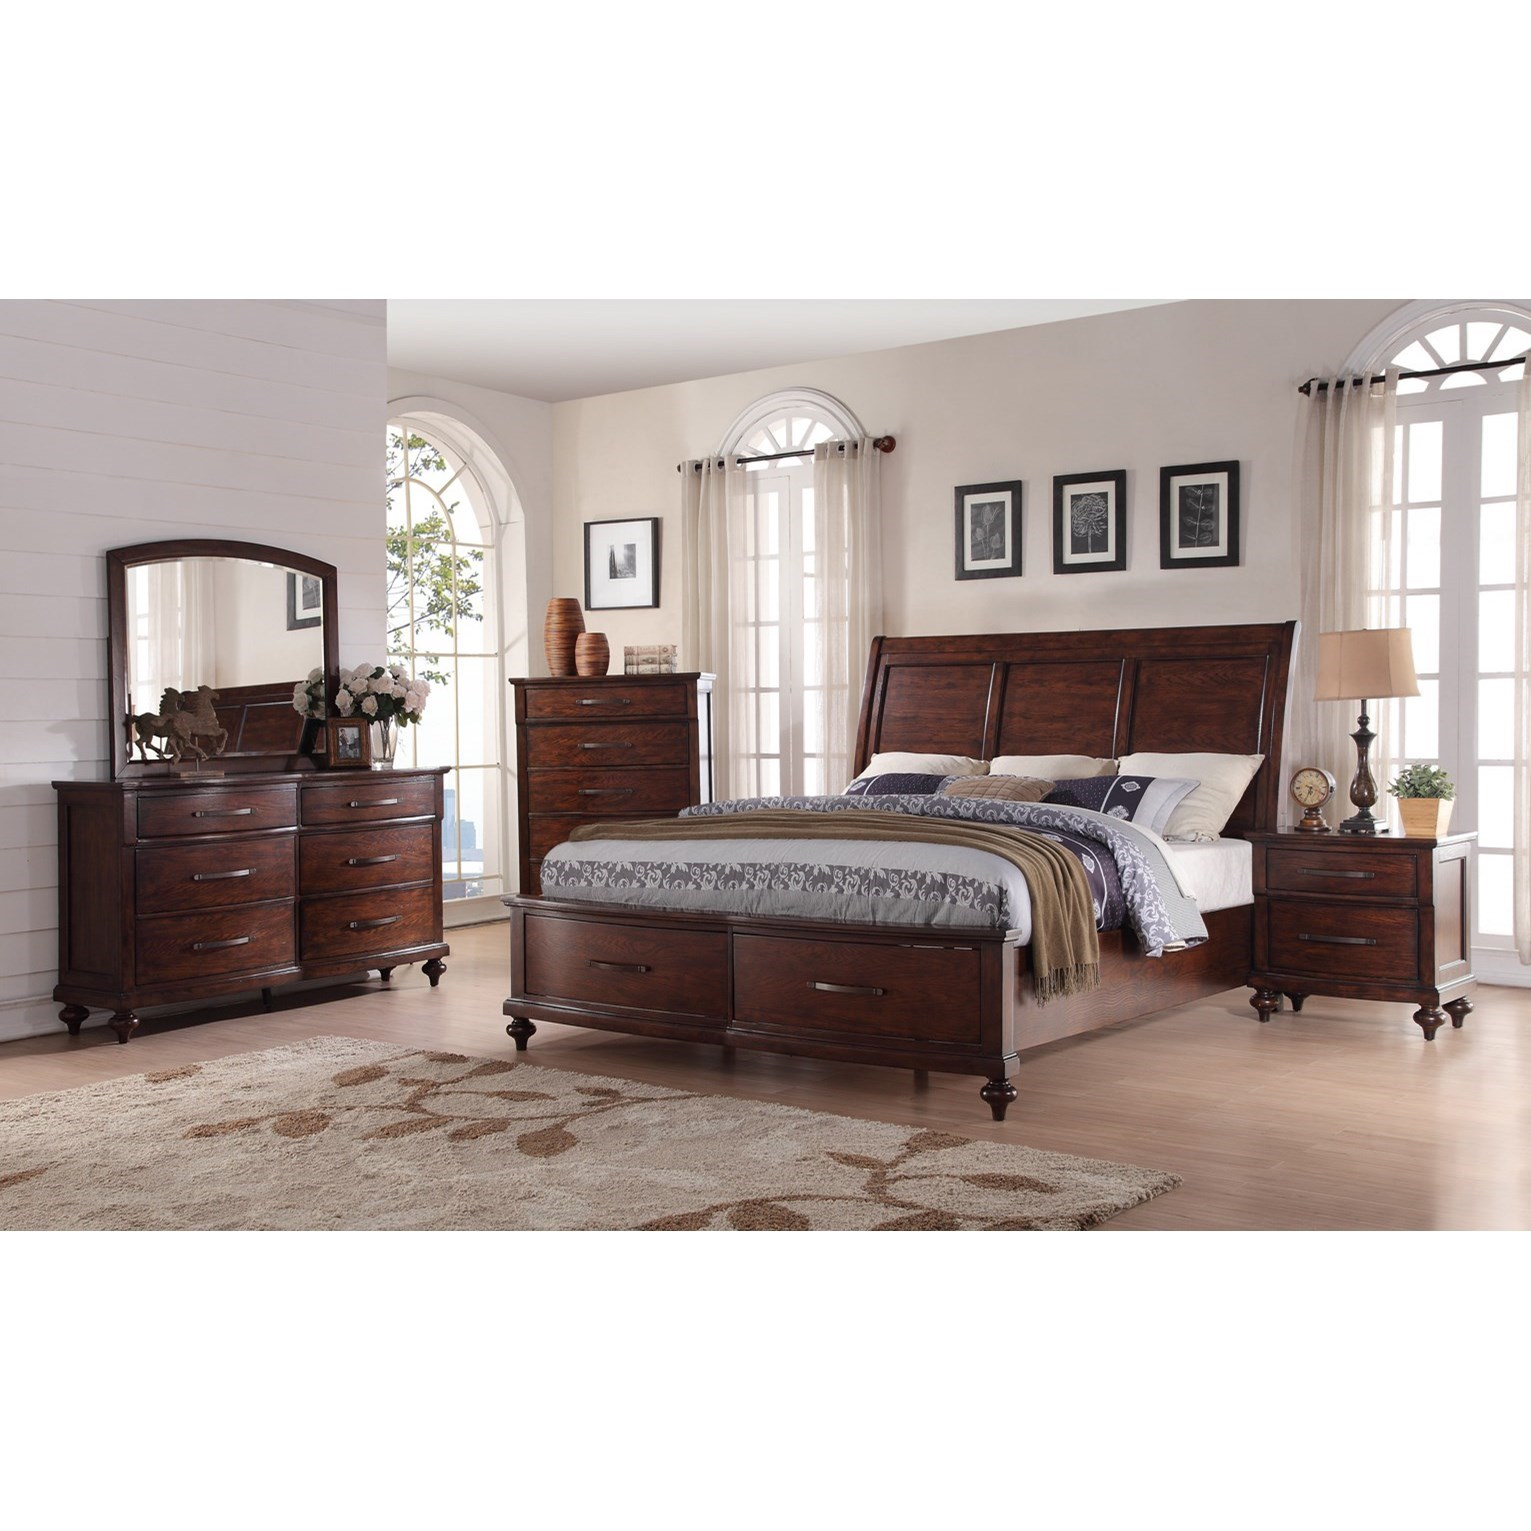 New Classic La Jolla B1033B-050 Six Drawer Dresser With